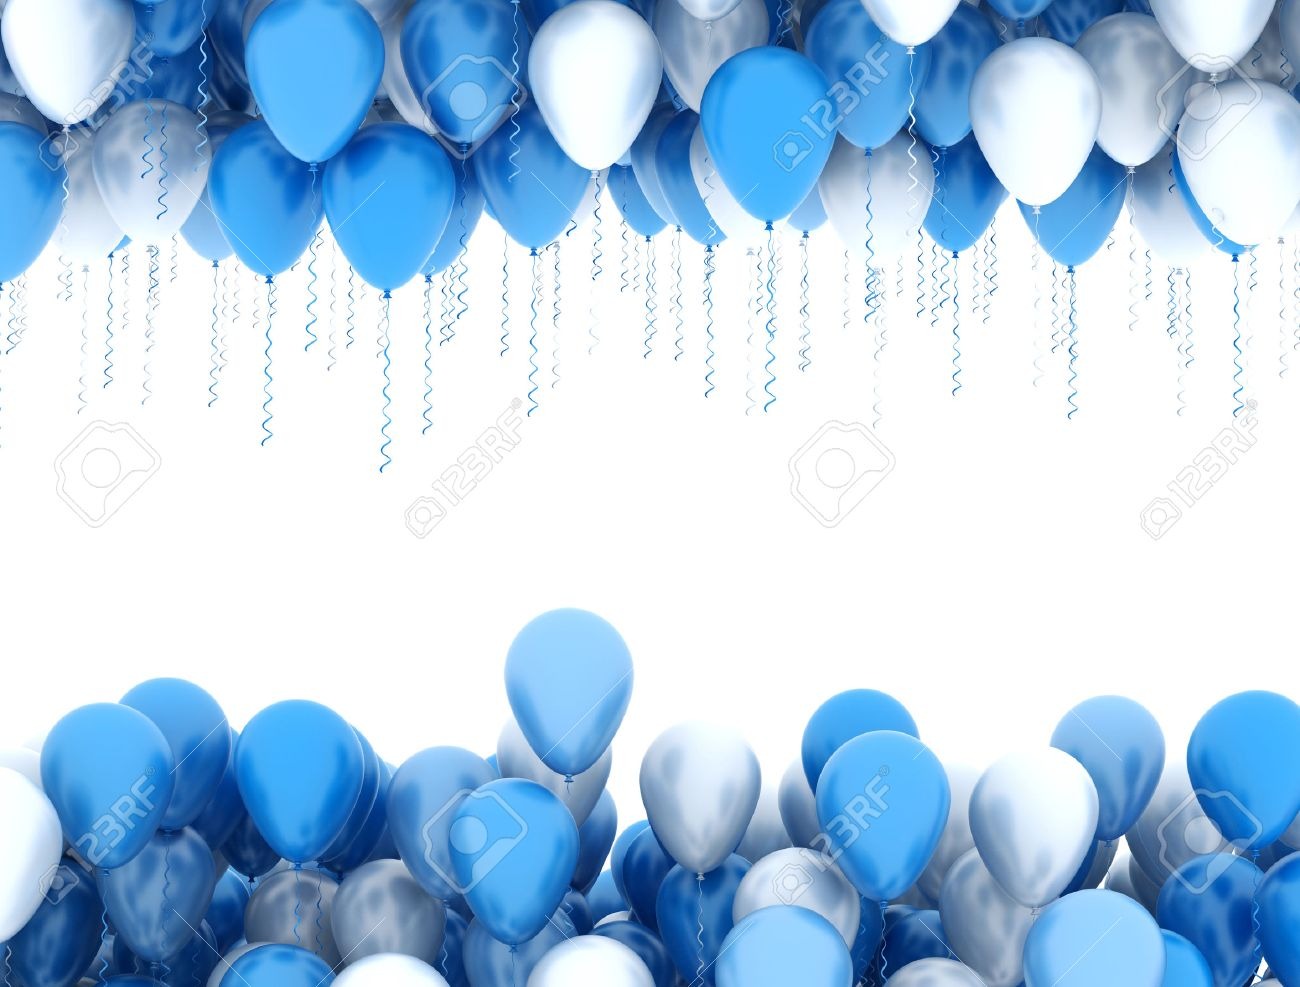 Blue party balloons isolated on white background - 57964670